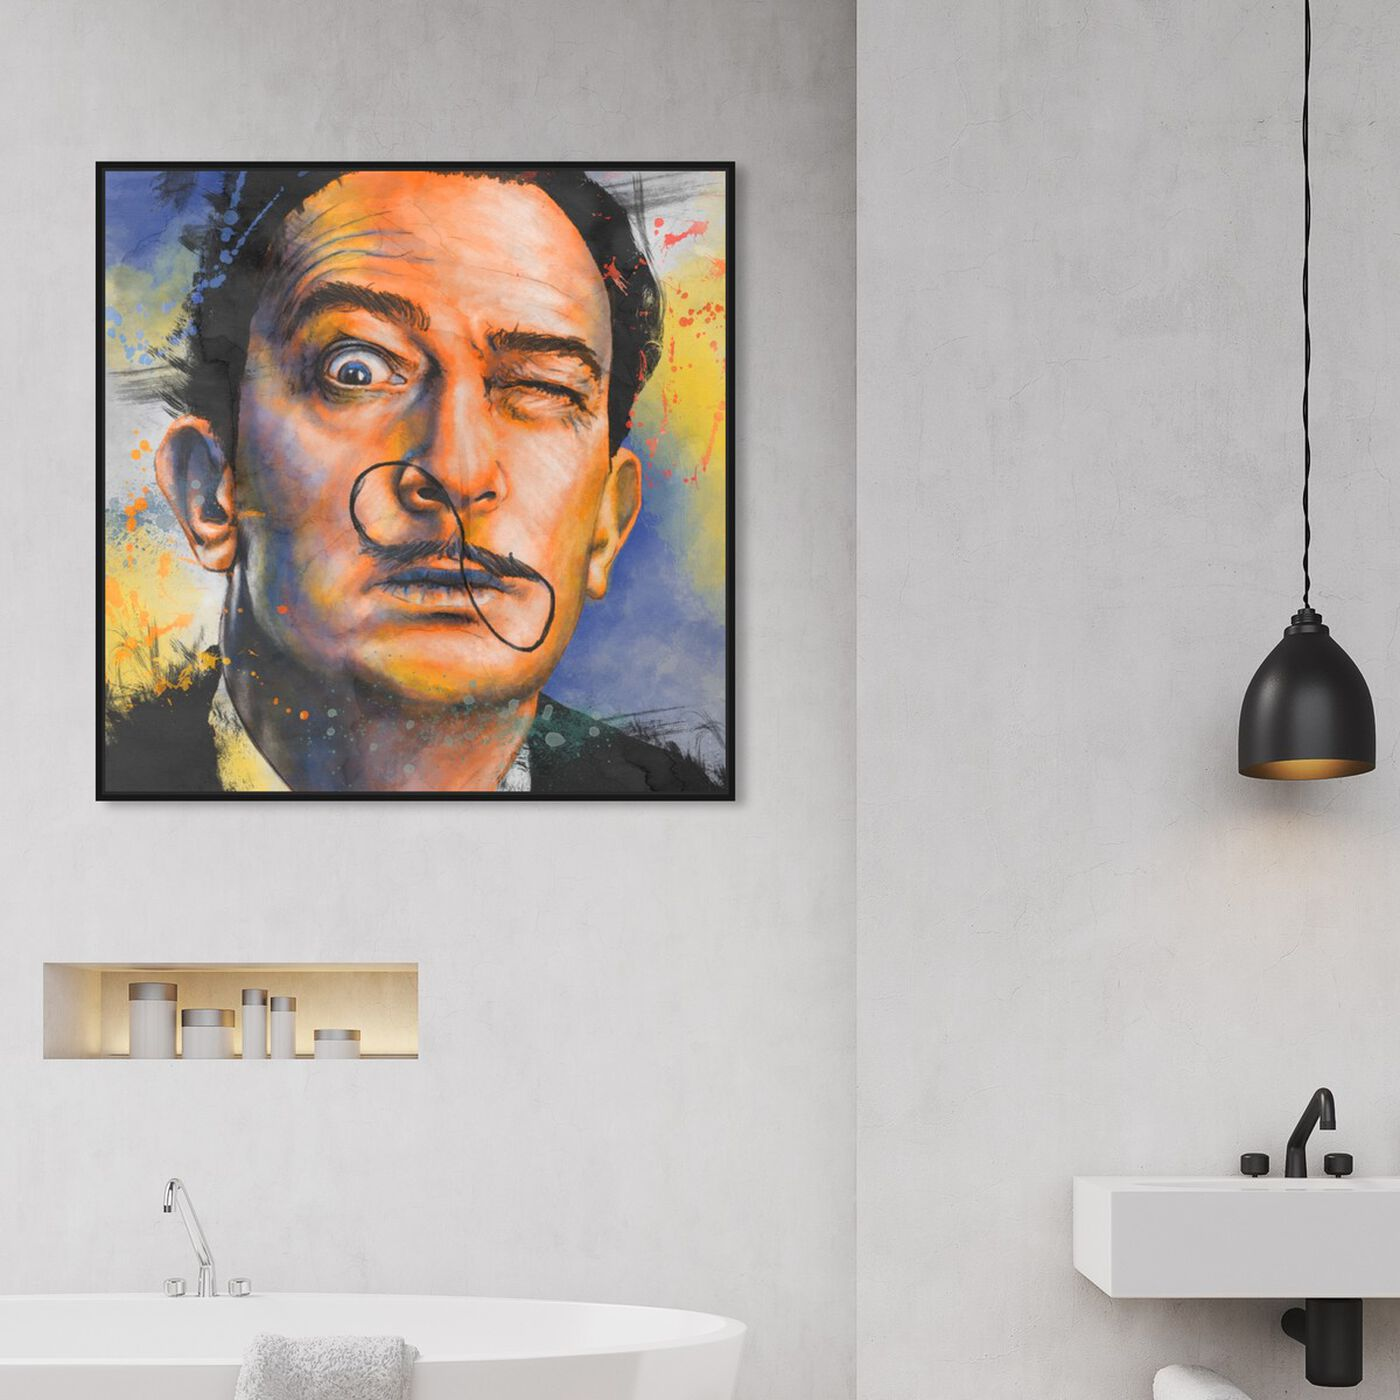 Hanging view of The Surrealist featuring people and portraits and celebrities art.